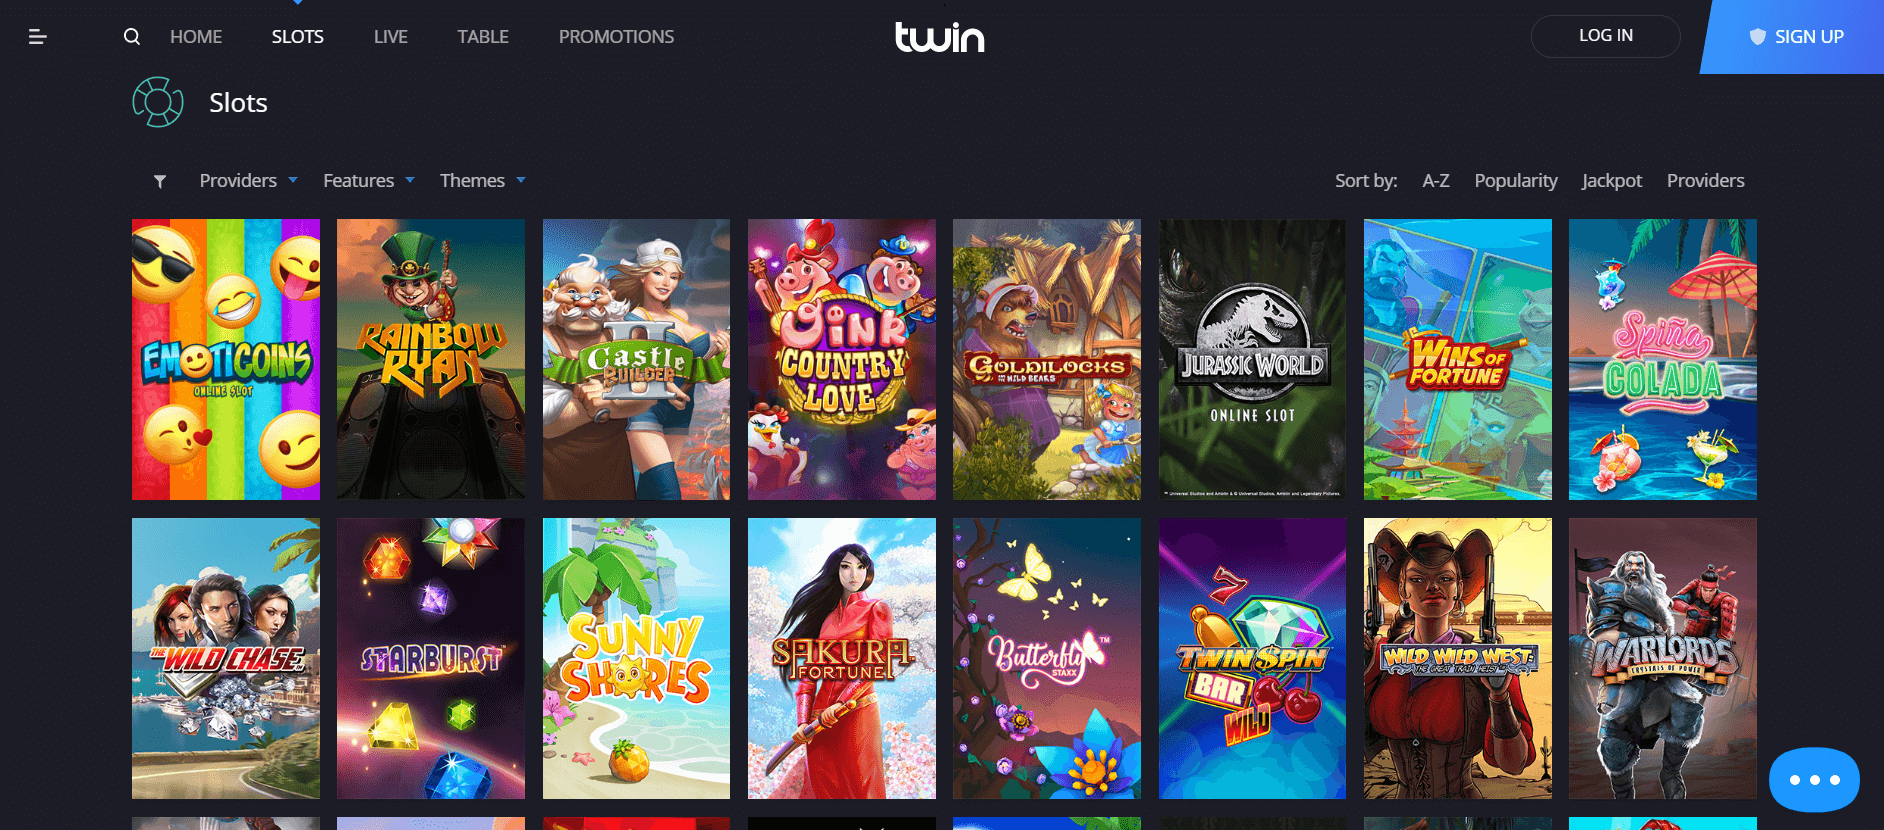 An image of twin casino games